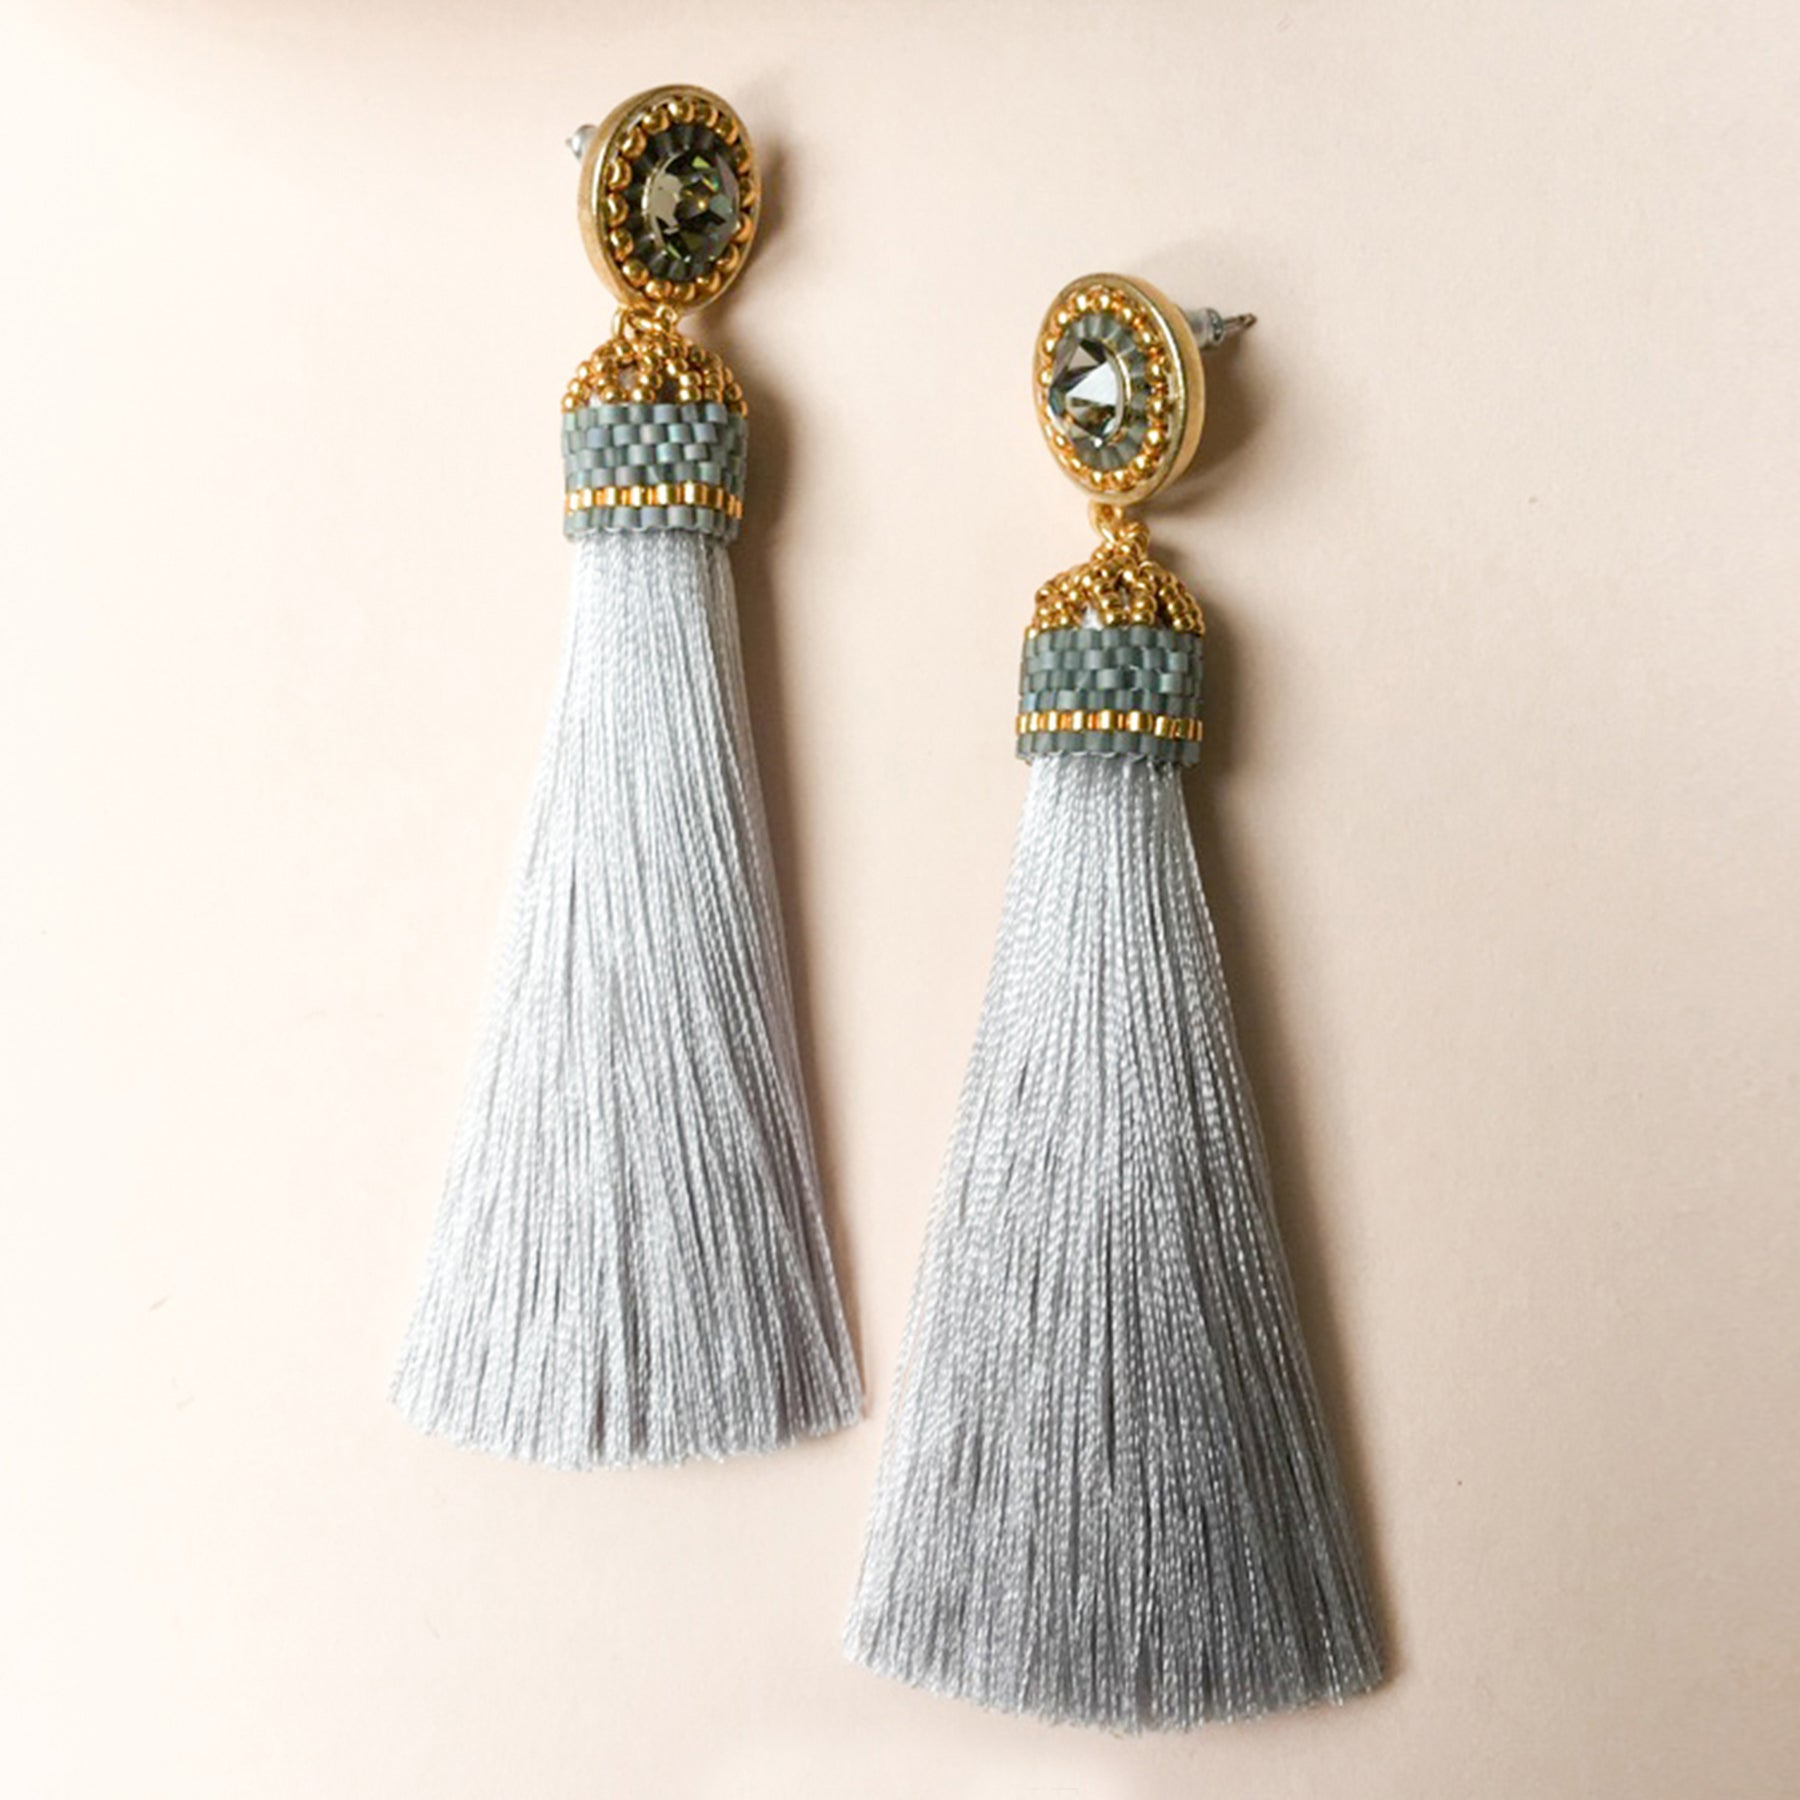 Tassel earrings made from ethically sourced materials